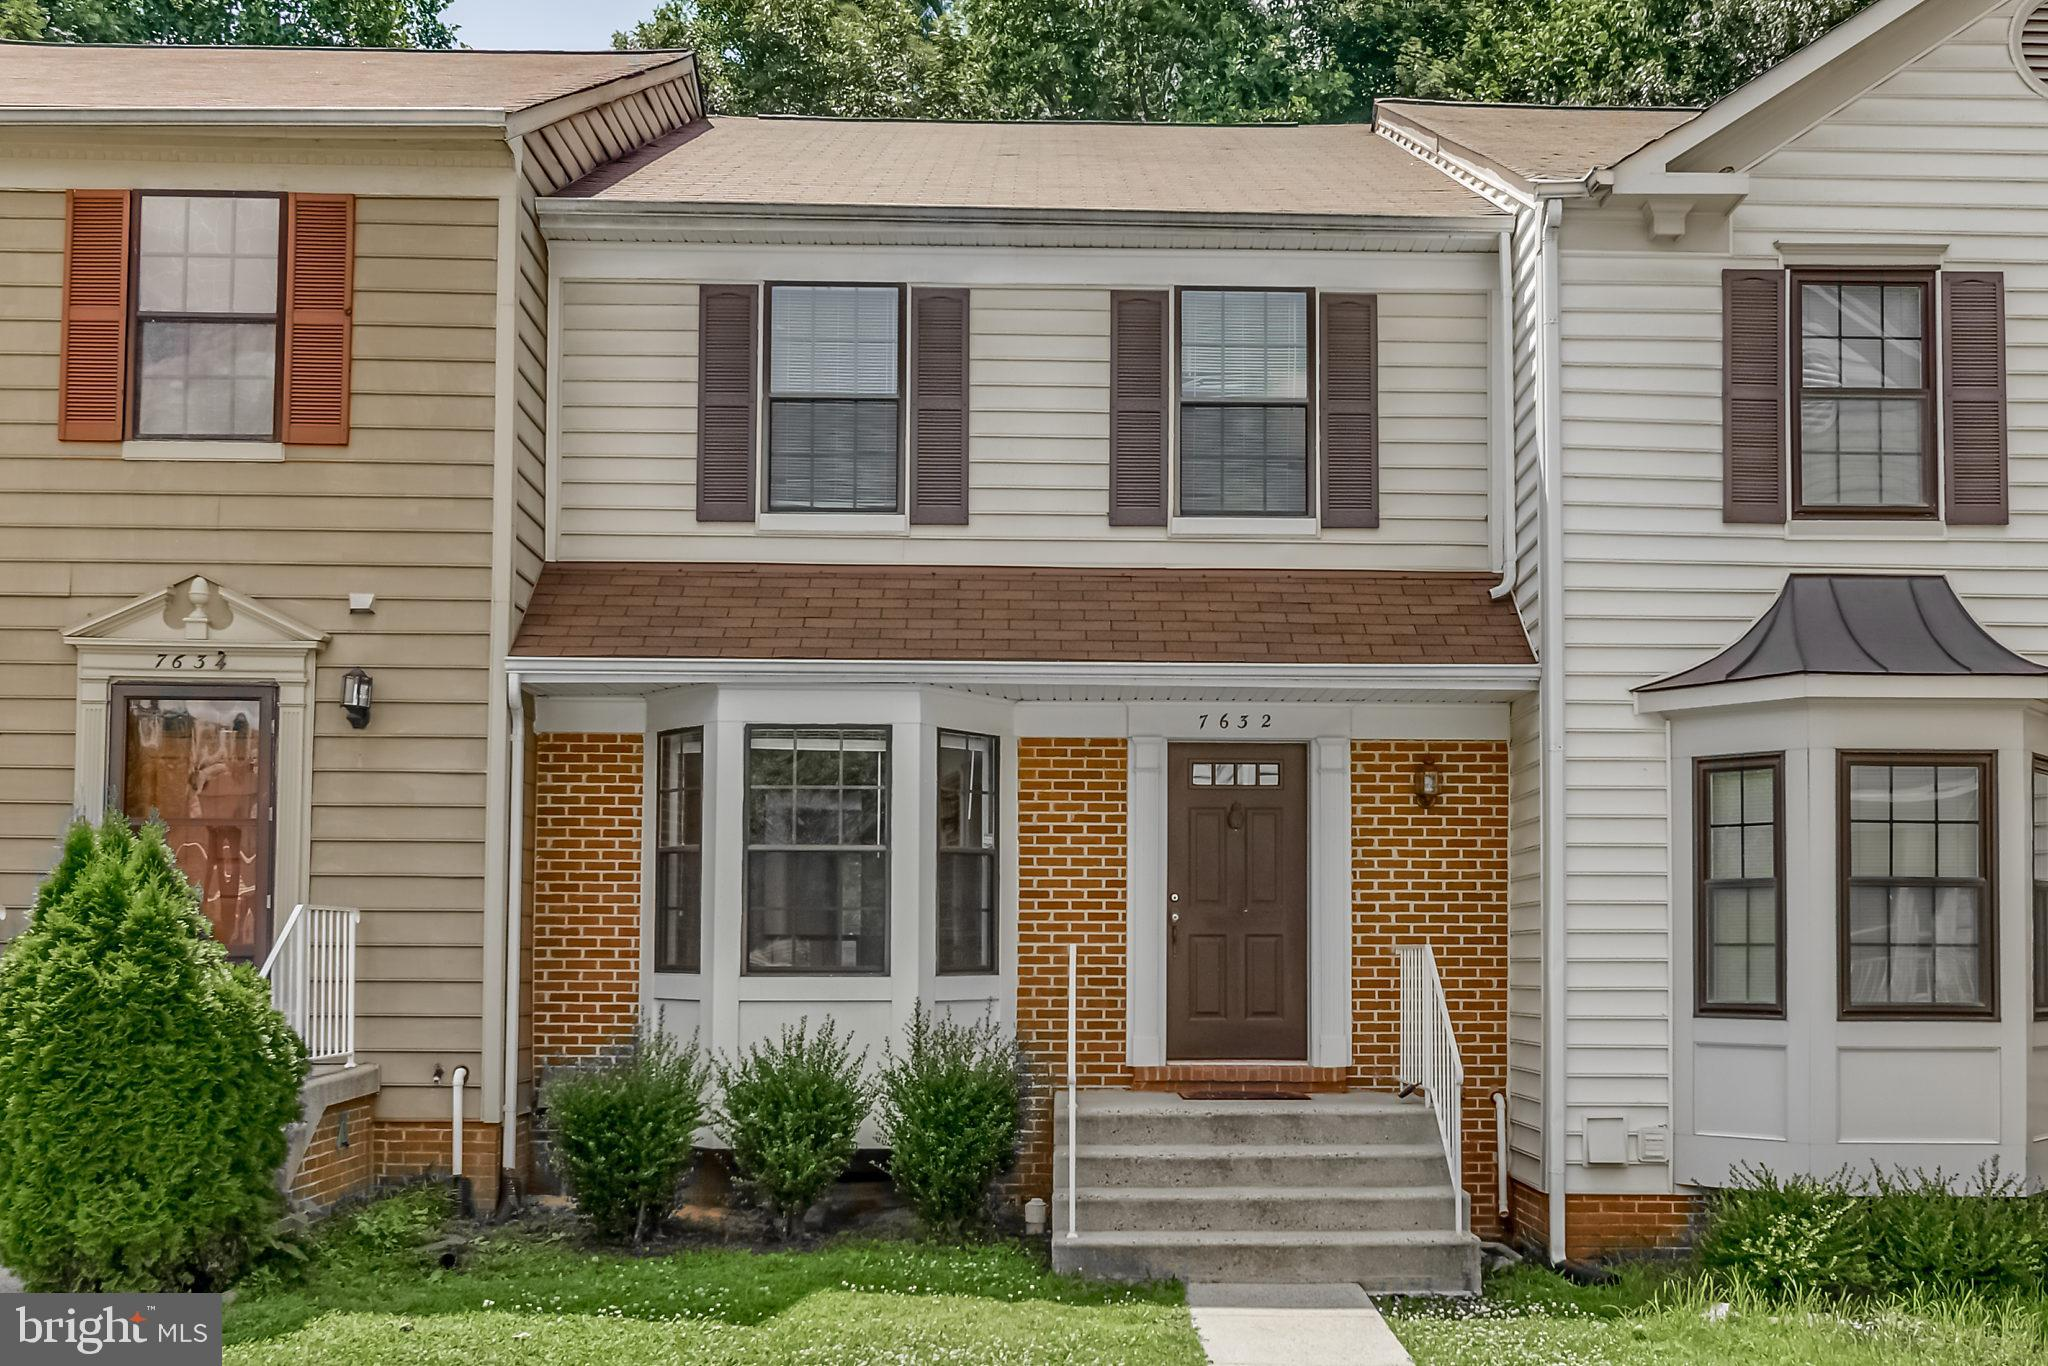 **6/22- Just installed new carpets & fresh paint throughout!**       Light, Bright & Open - 3 level Townhome with fenced in rear backyard & walkout patio from Kitchen.   Master suite with double vanity & soaking tub. Large lower level rec room with functional wood burning fireplace.  This property is ready for a buyer who wants to make it their own!